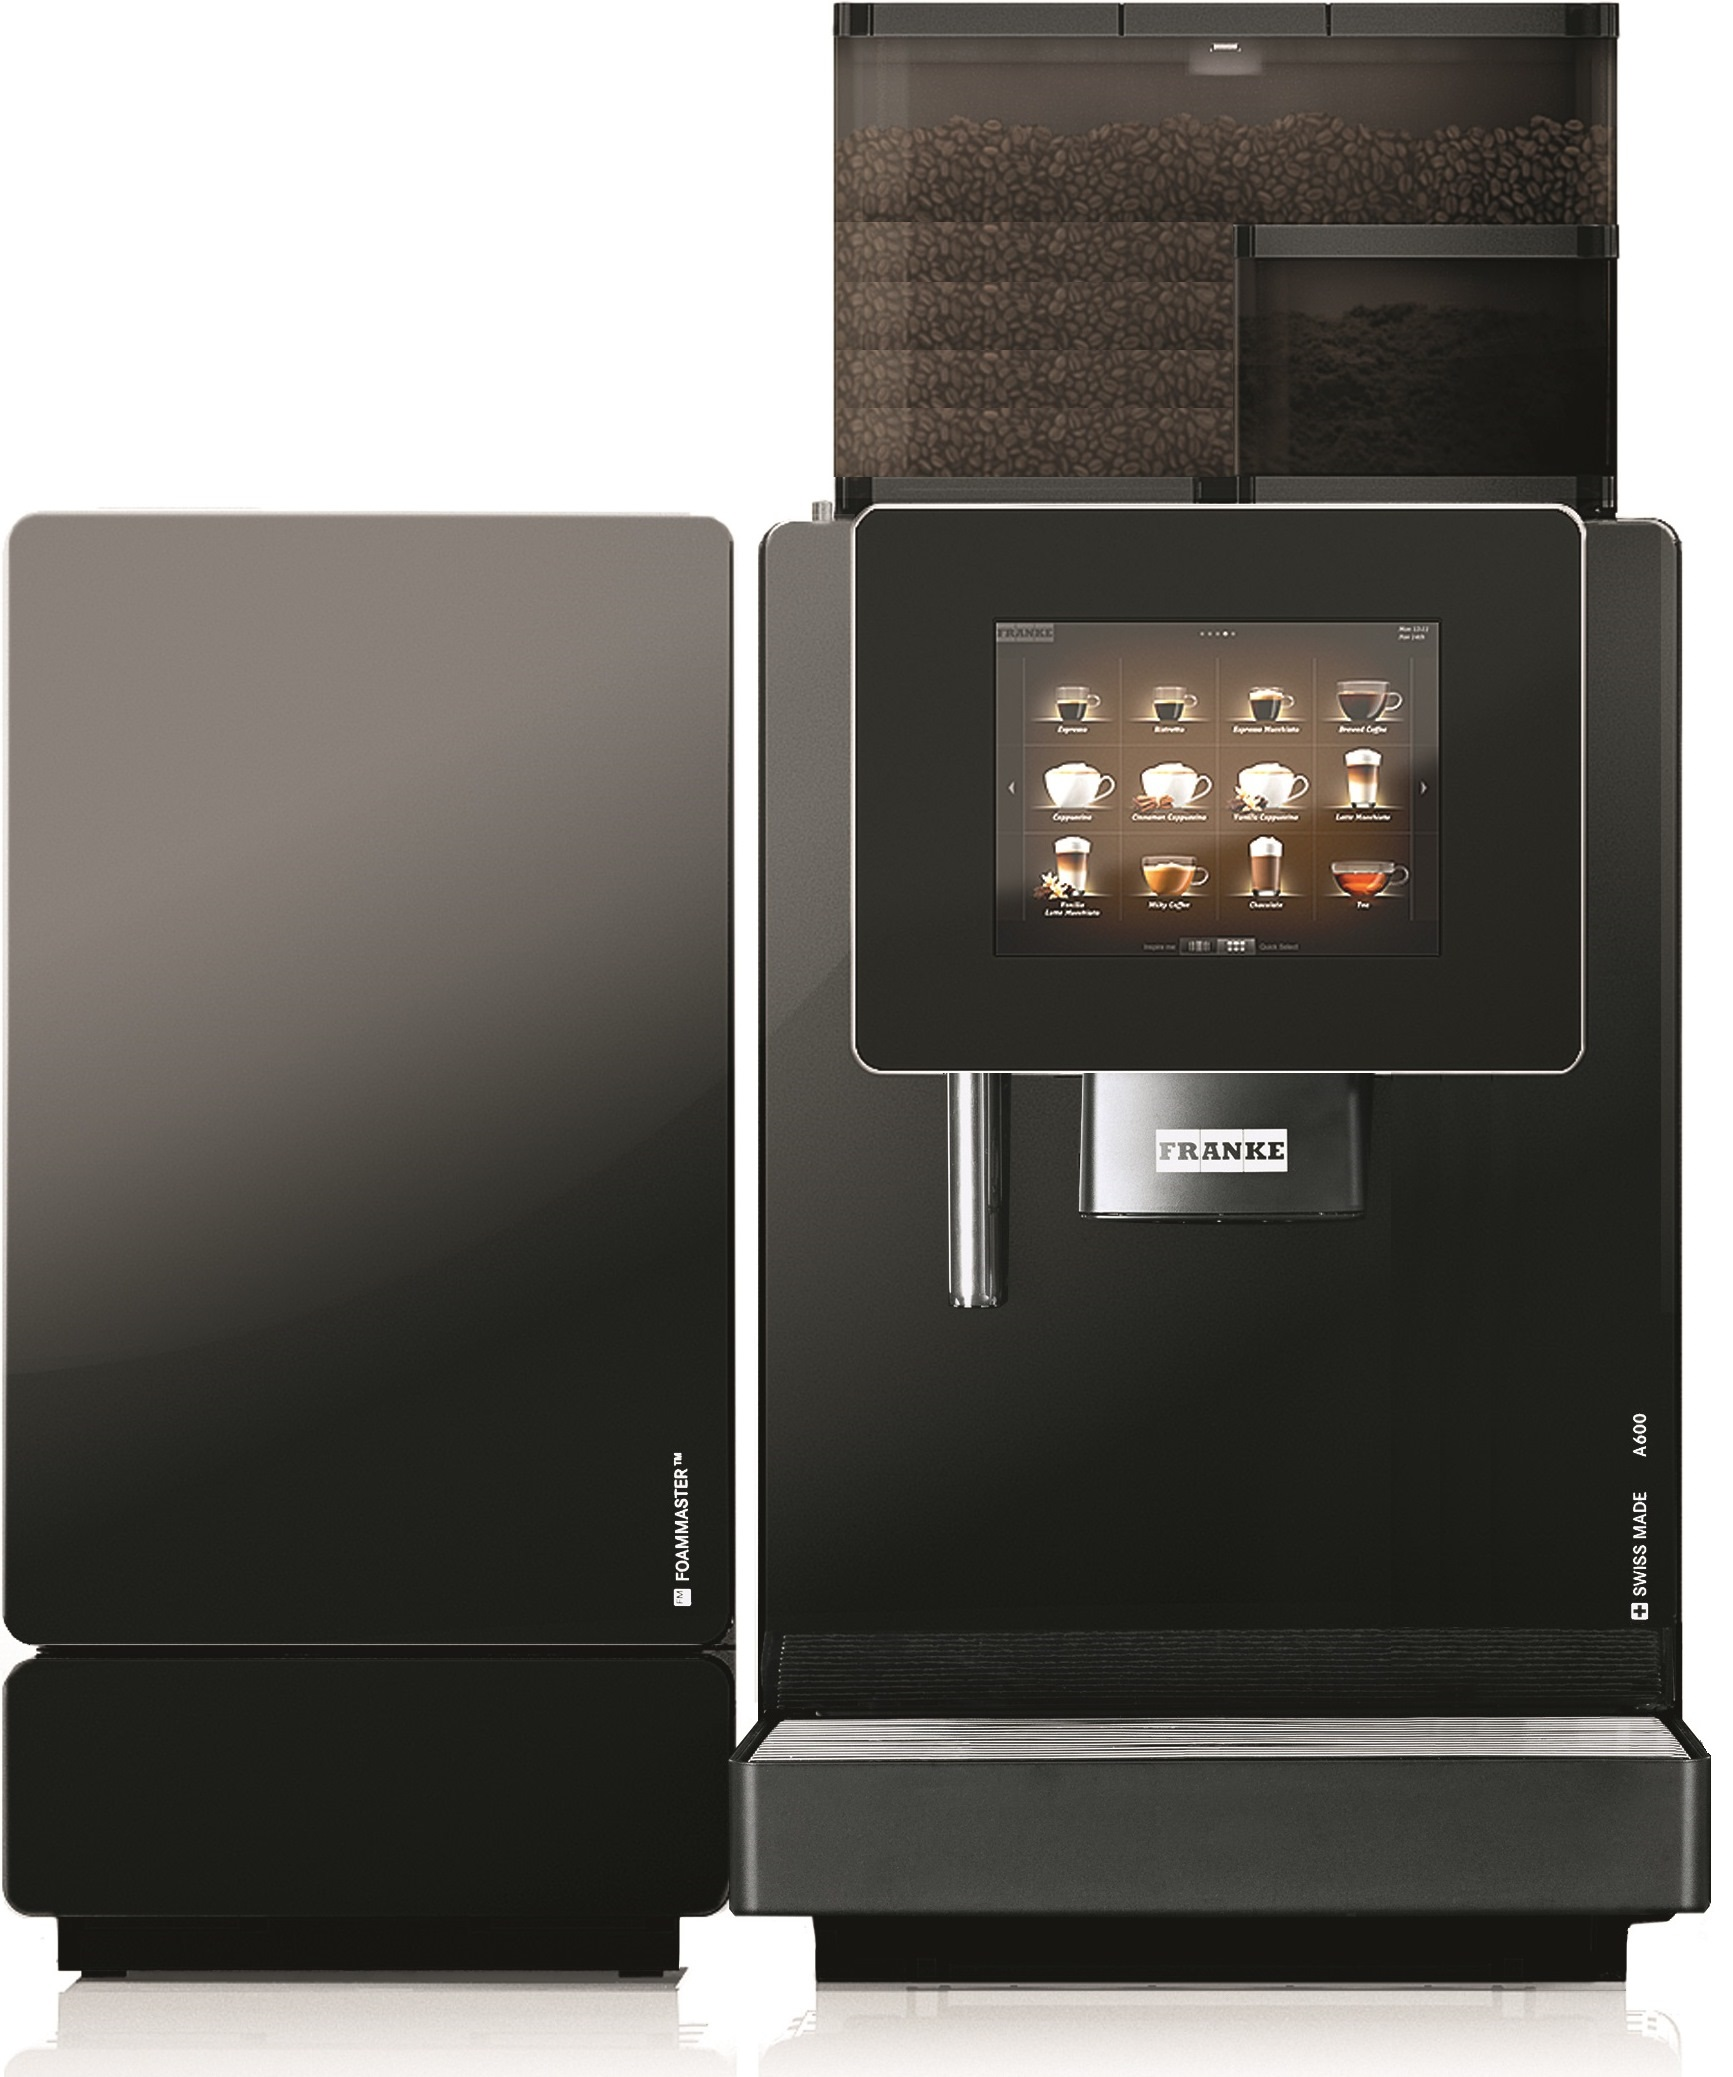 franke a600 coffee machine nu vending. Black Bedroom Furniture Sets. Home Design Ideas